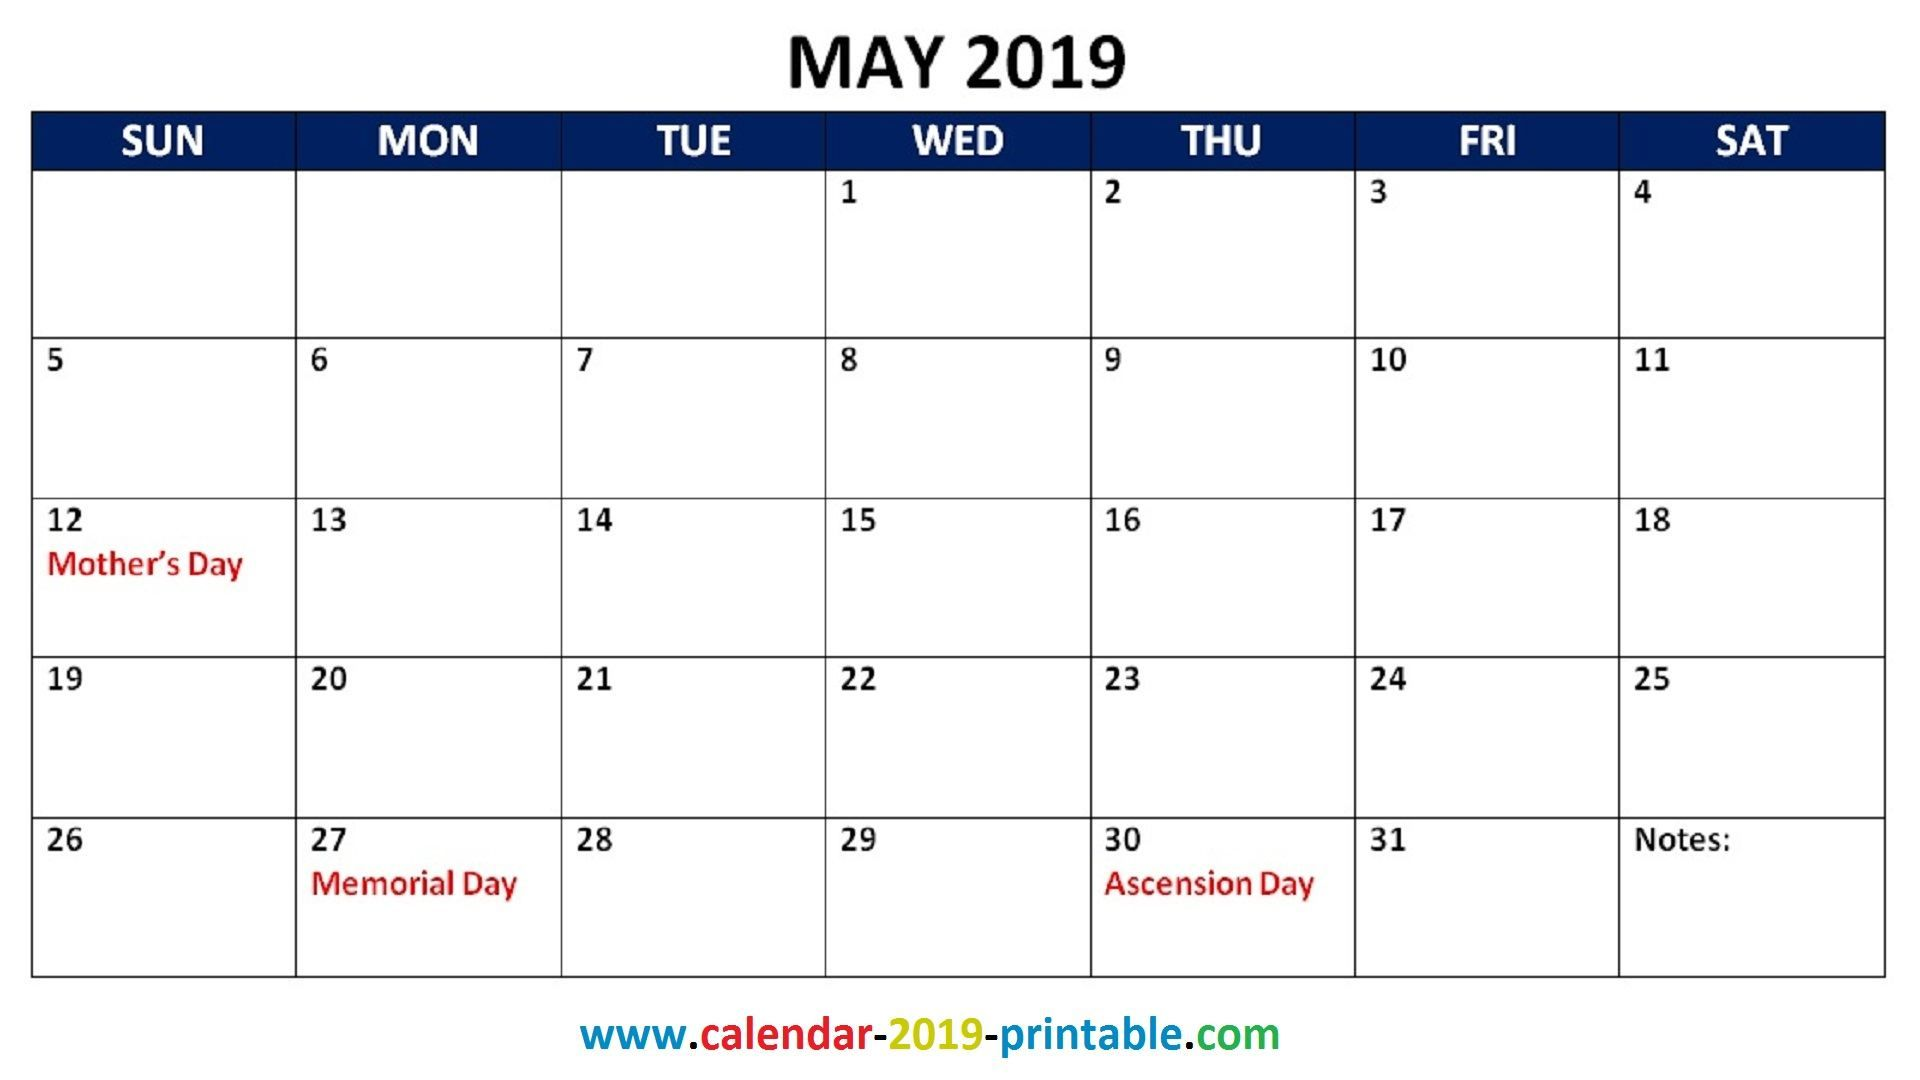 May 2019 Calendar Memorial Day Get May 2019 Calendar with Holidays Printable Template